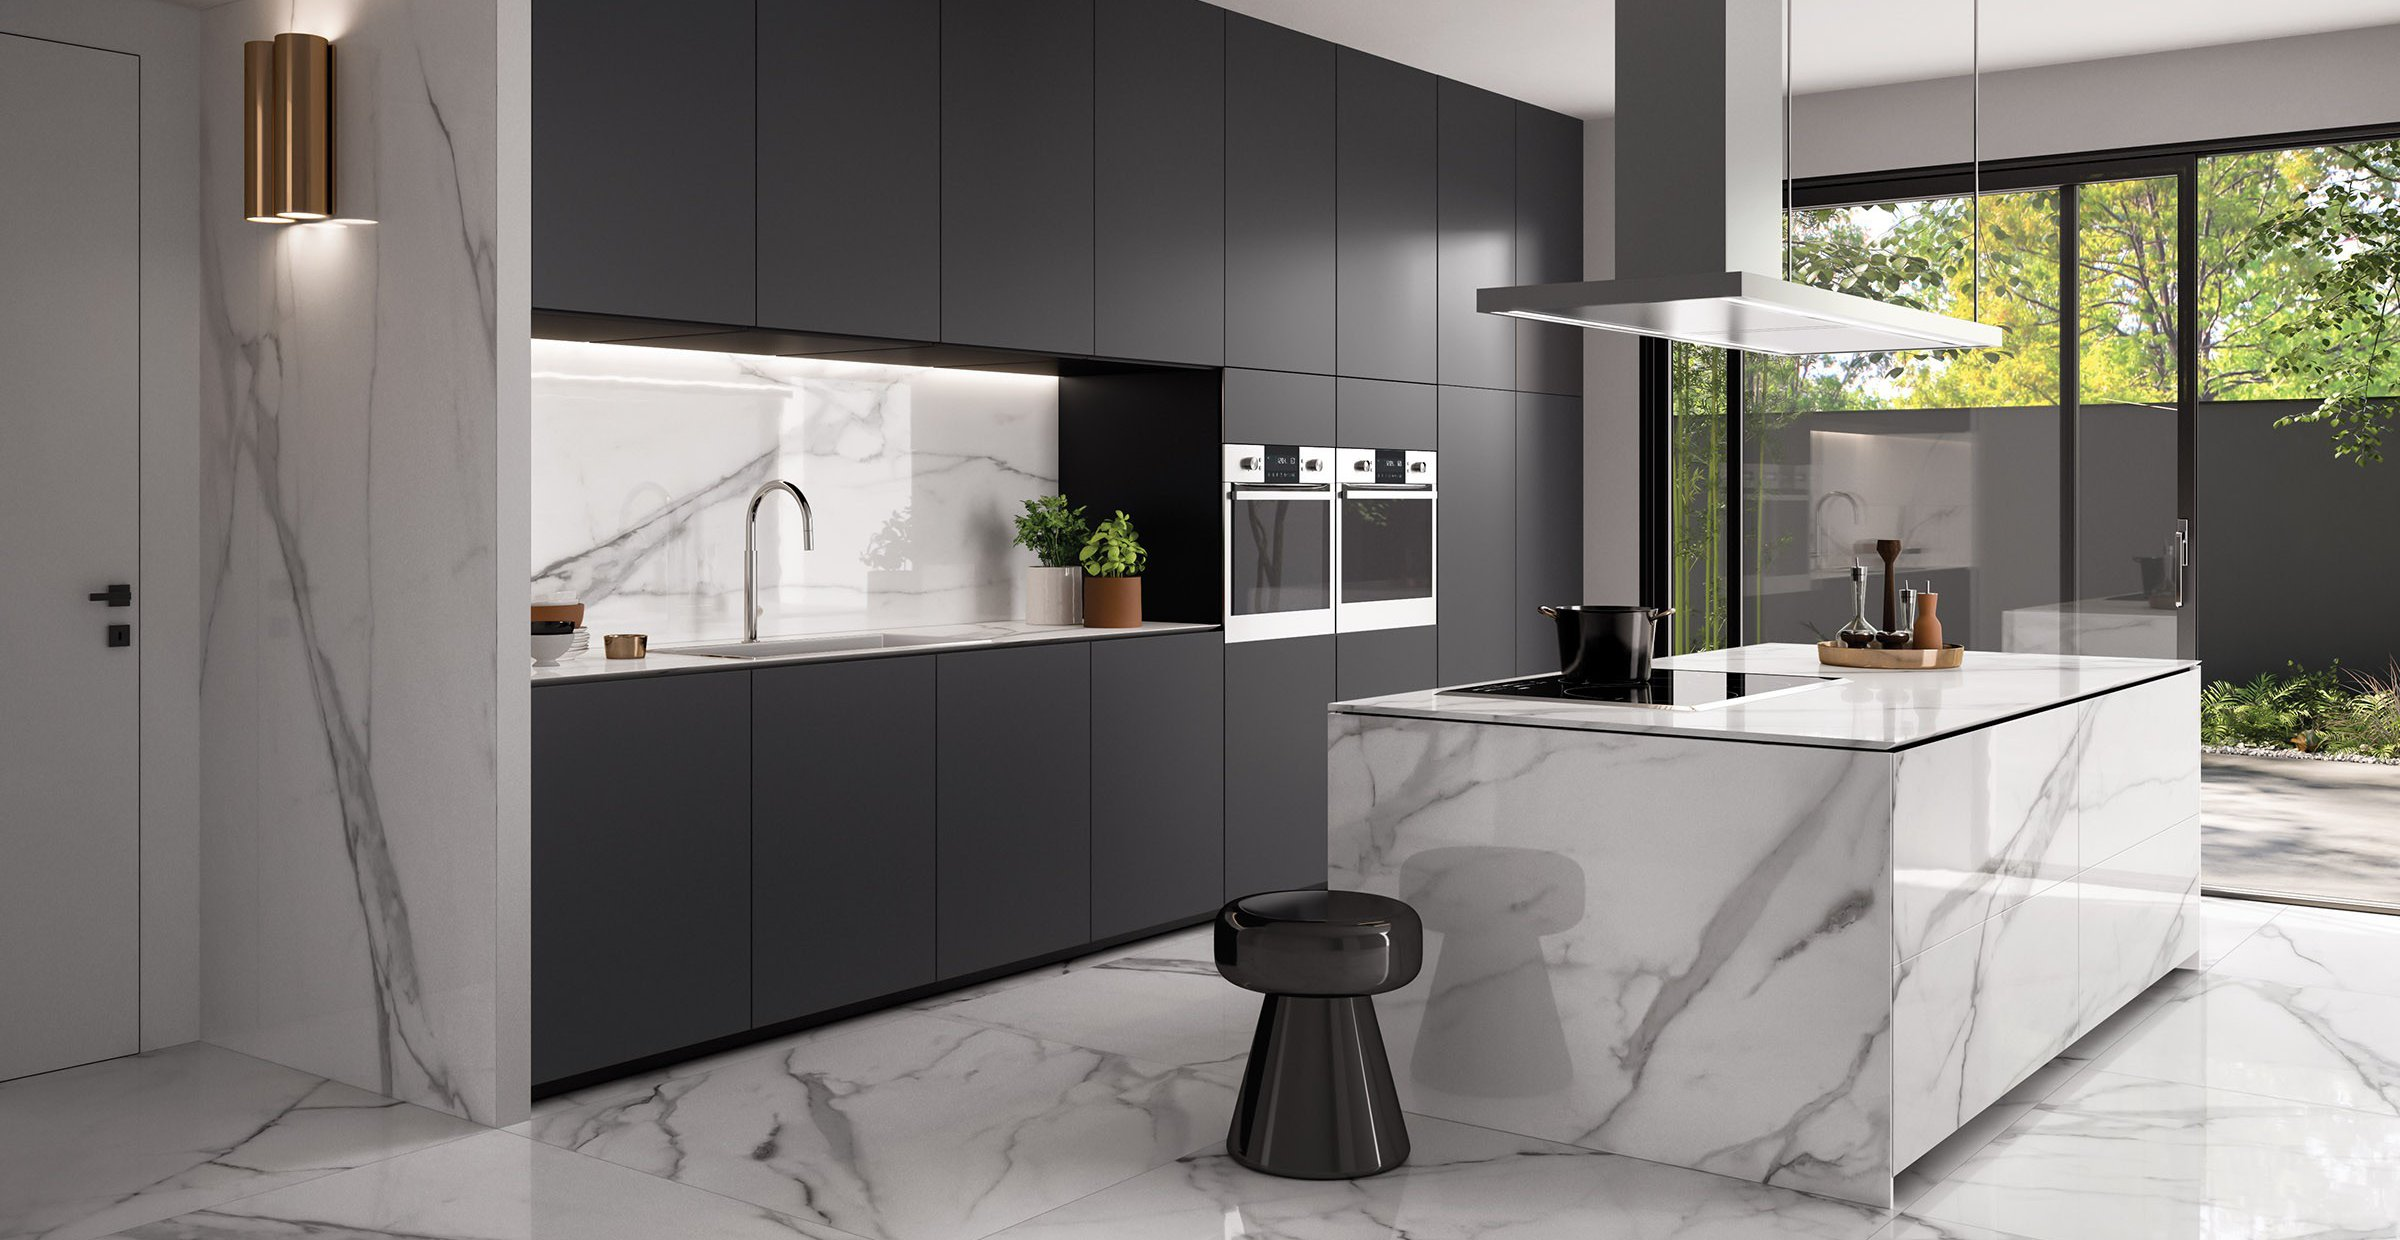 versilia marble White tiles Modern style Kitchen